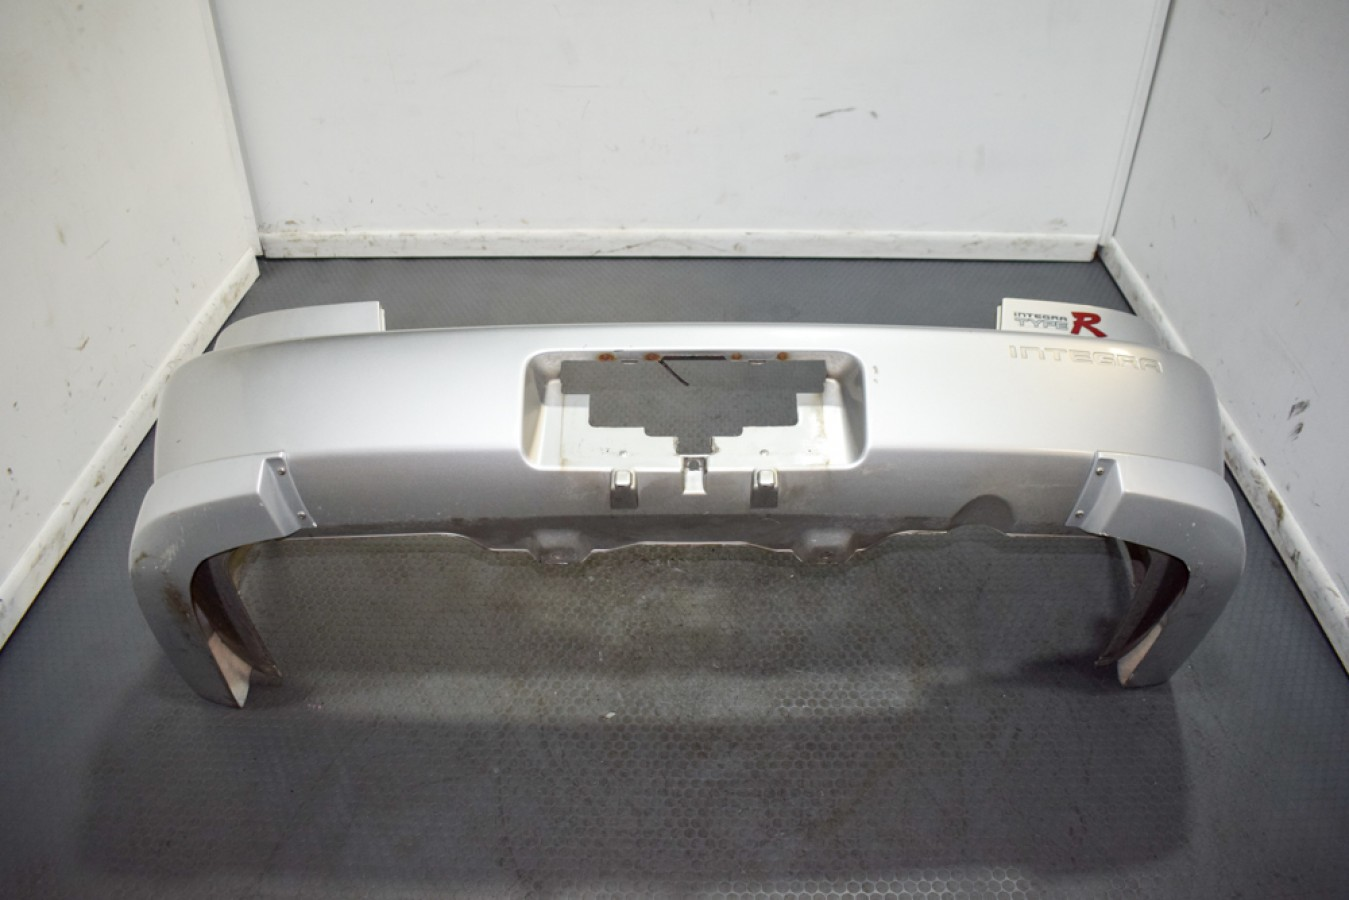 Clean And Low Mileage 94 01 Honda Acura Integra Db8 4 Door Rear Bumper In Silver With Spats For Sale Bumpers Lips J Spec Auto Sports